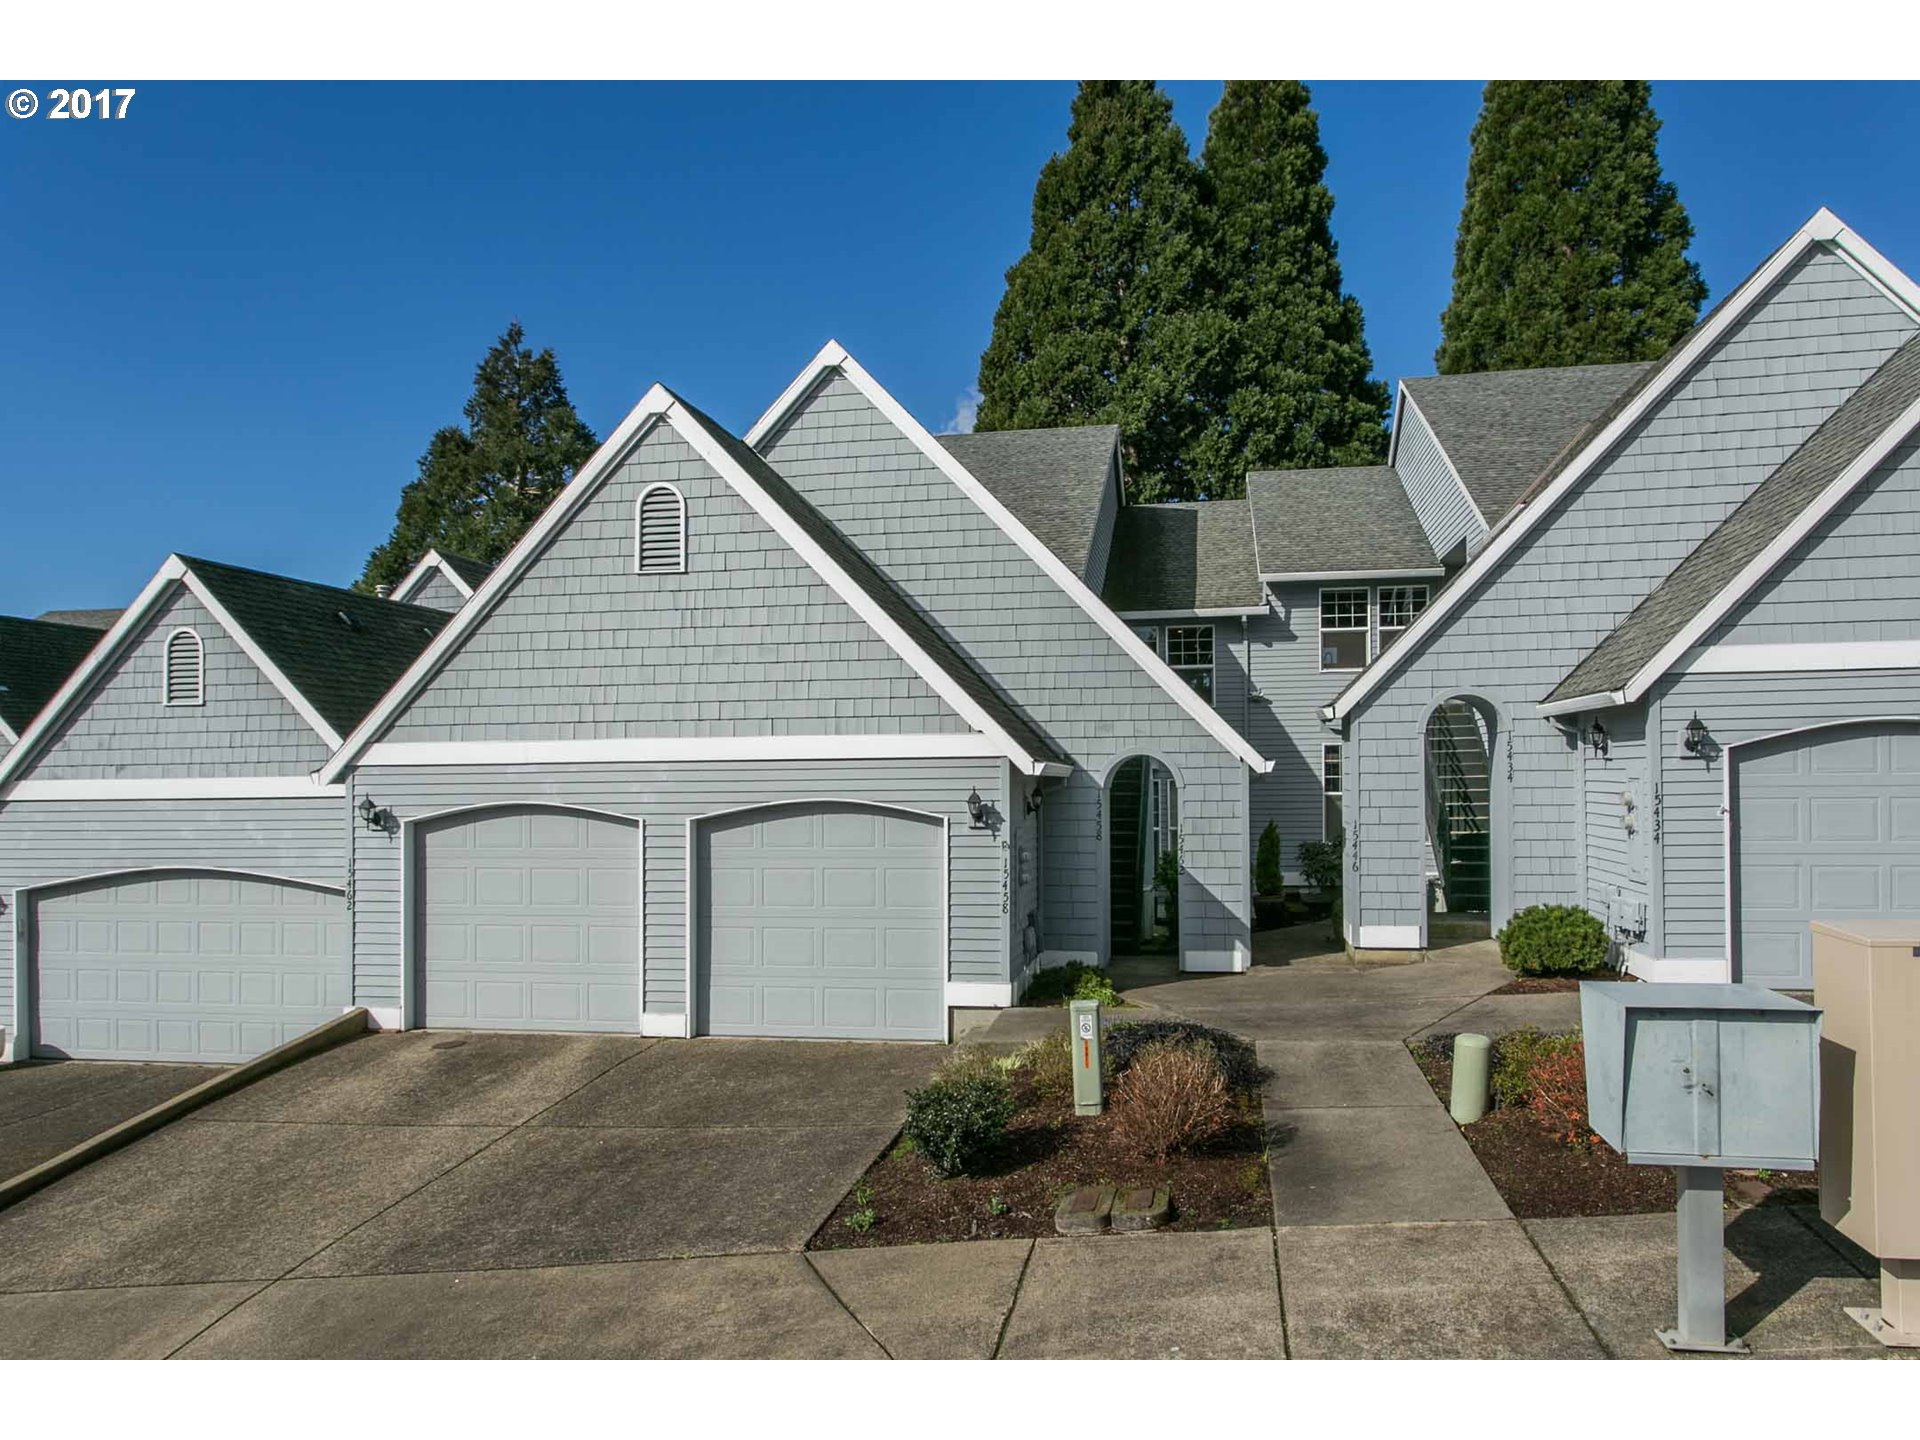 tigard oregon real estate from 250 000 325 000 the rob levy team